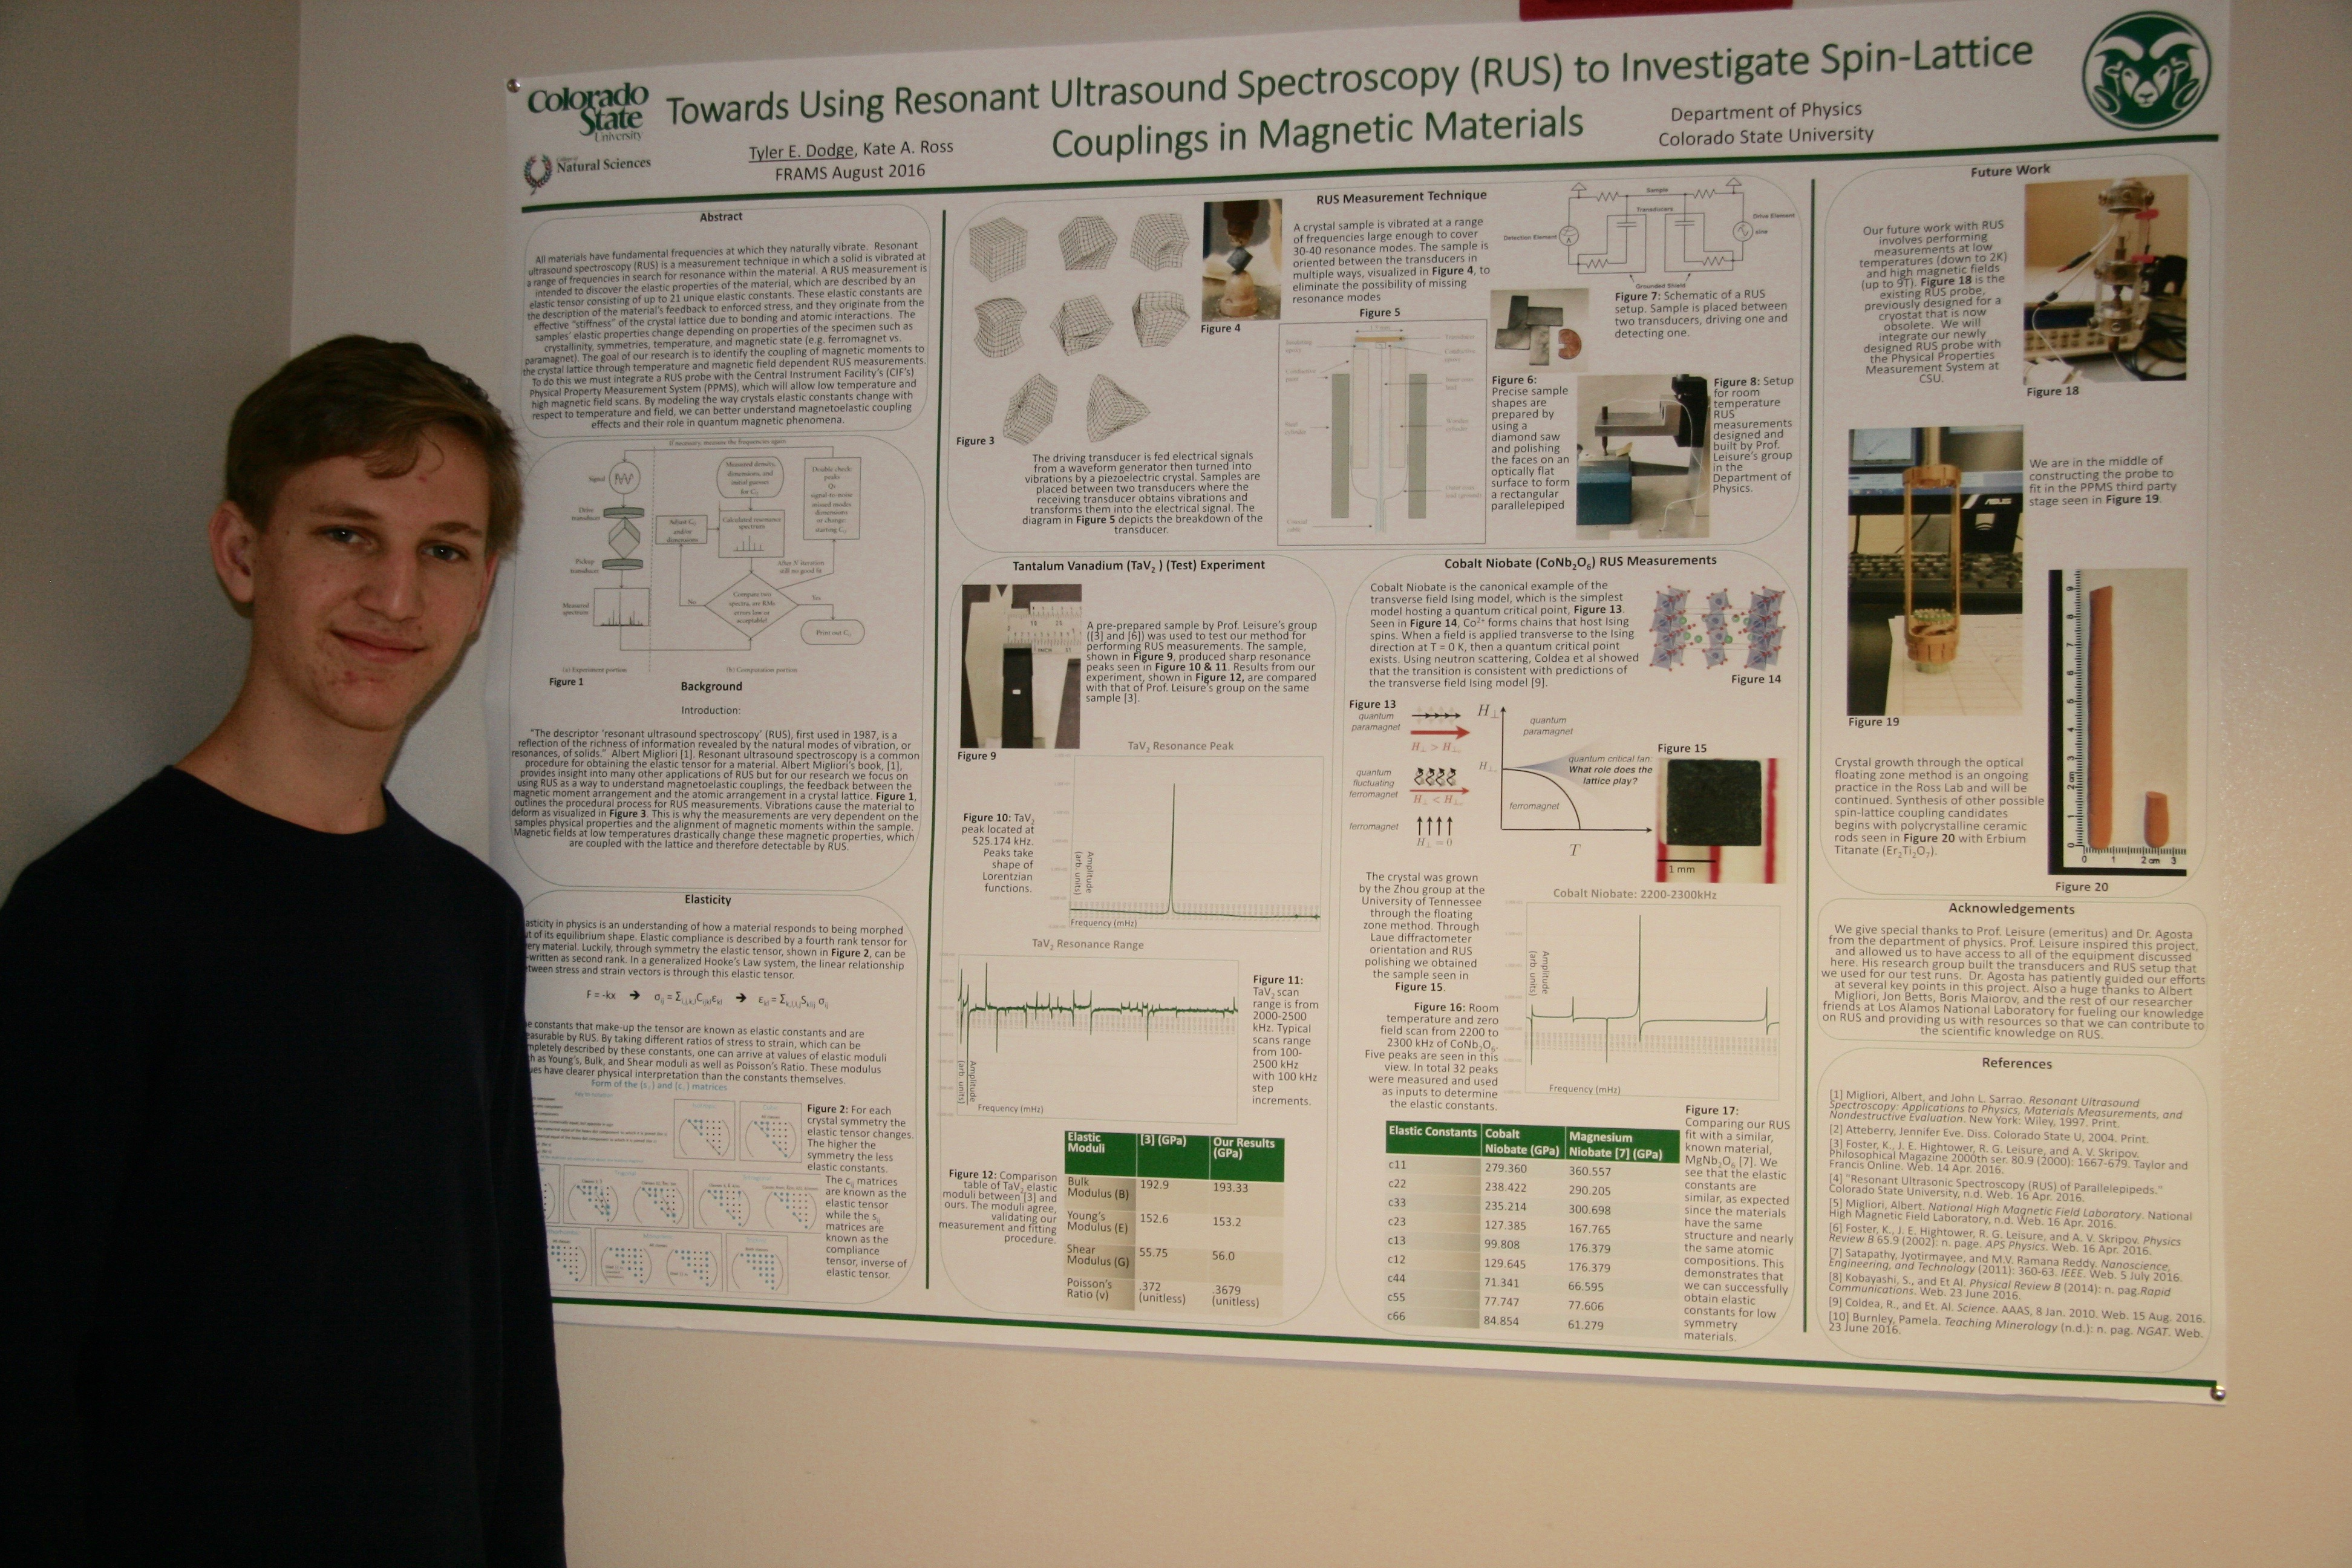 The award winning poster presenter, Tyler Dodge, and his poster on RUS